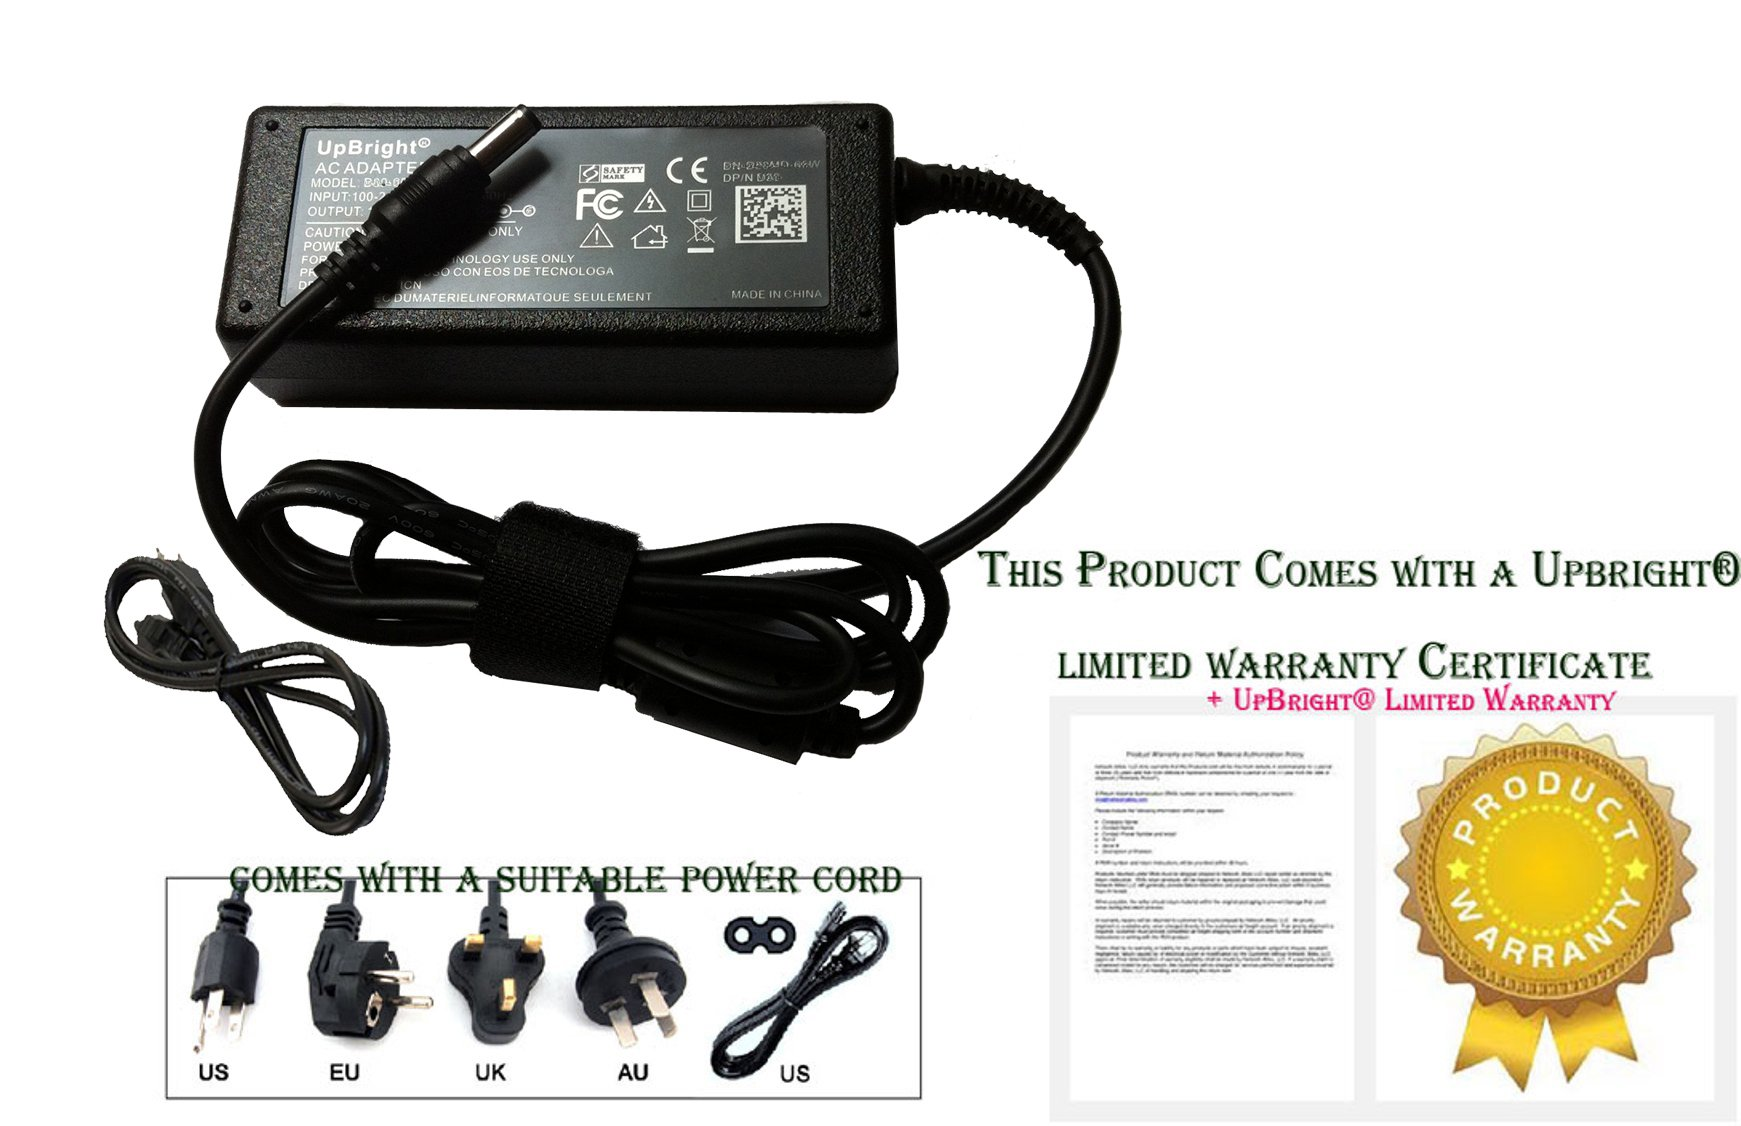 UpBright NEW AC Adapter For MOTION Computing M1300 M1400 M1200 Tablet Power Supply Cord Charger PSU by UPBRIGHT